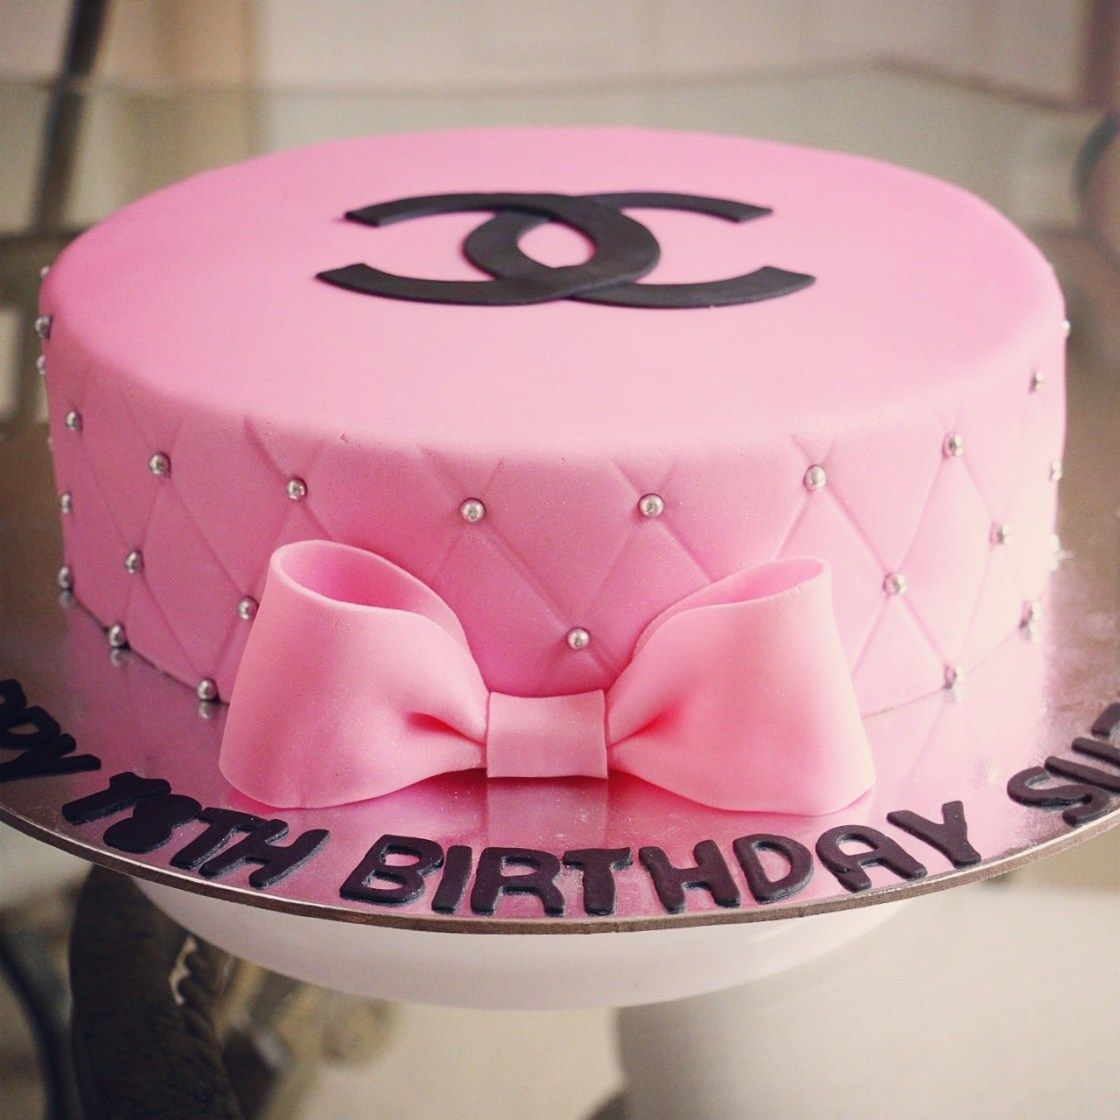 Chanel birthday cake 8 cake channel cakes store location